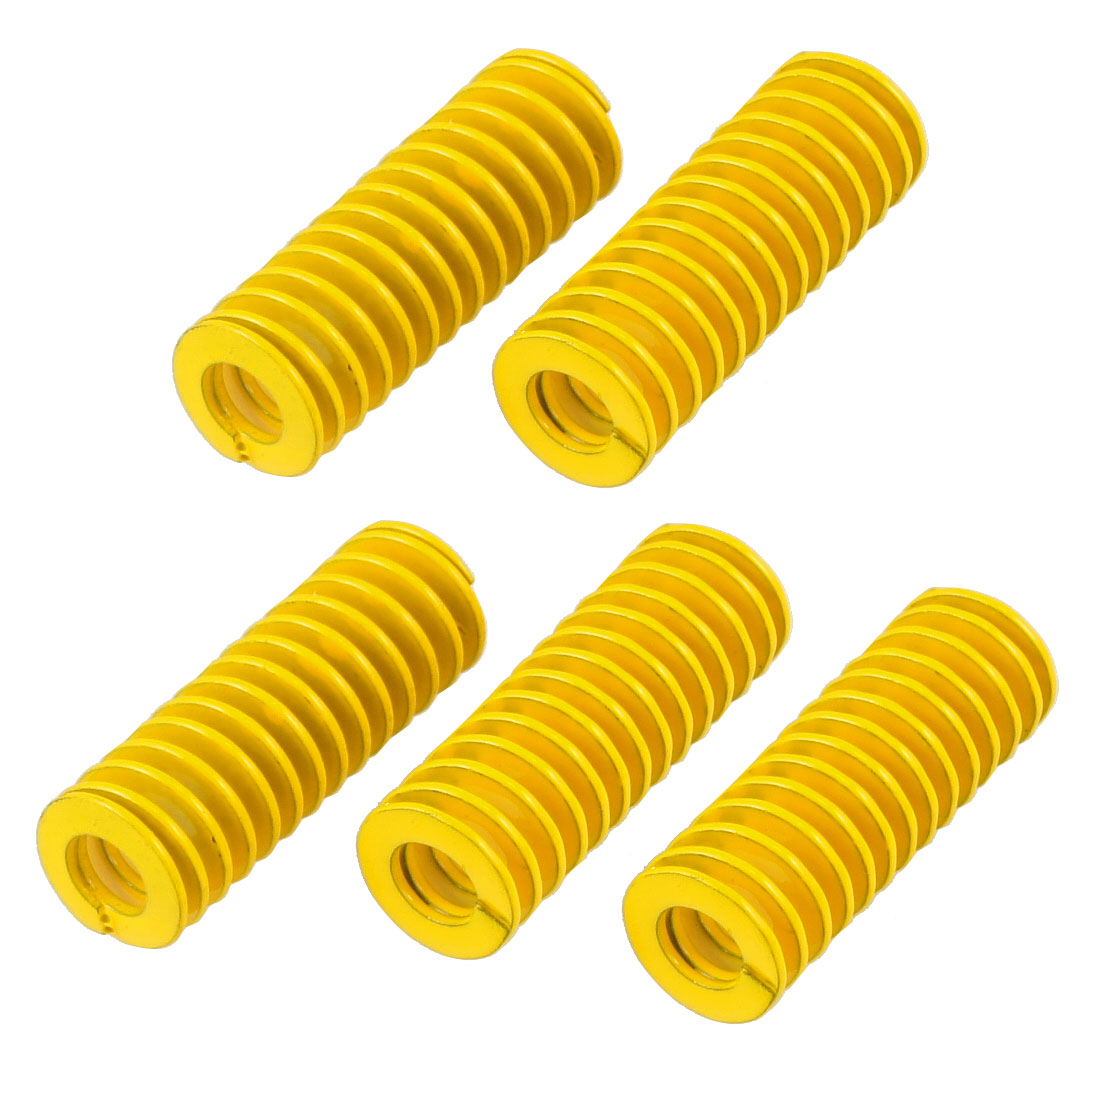 5 Pcs 16mm x 8mm x 45mm Spiral Metal Stamping Compression Die Spring